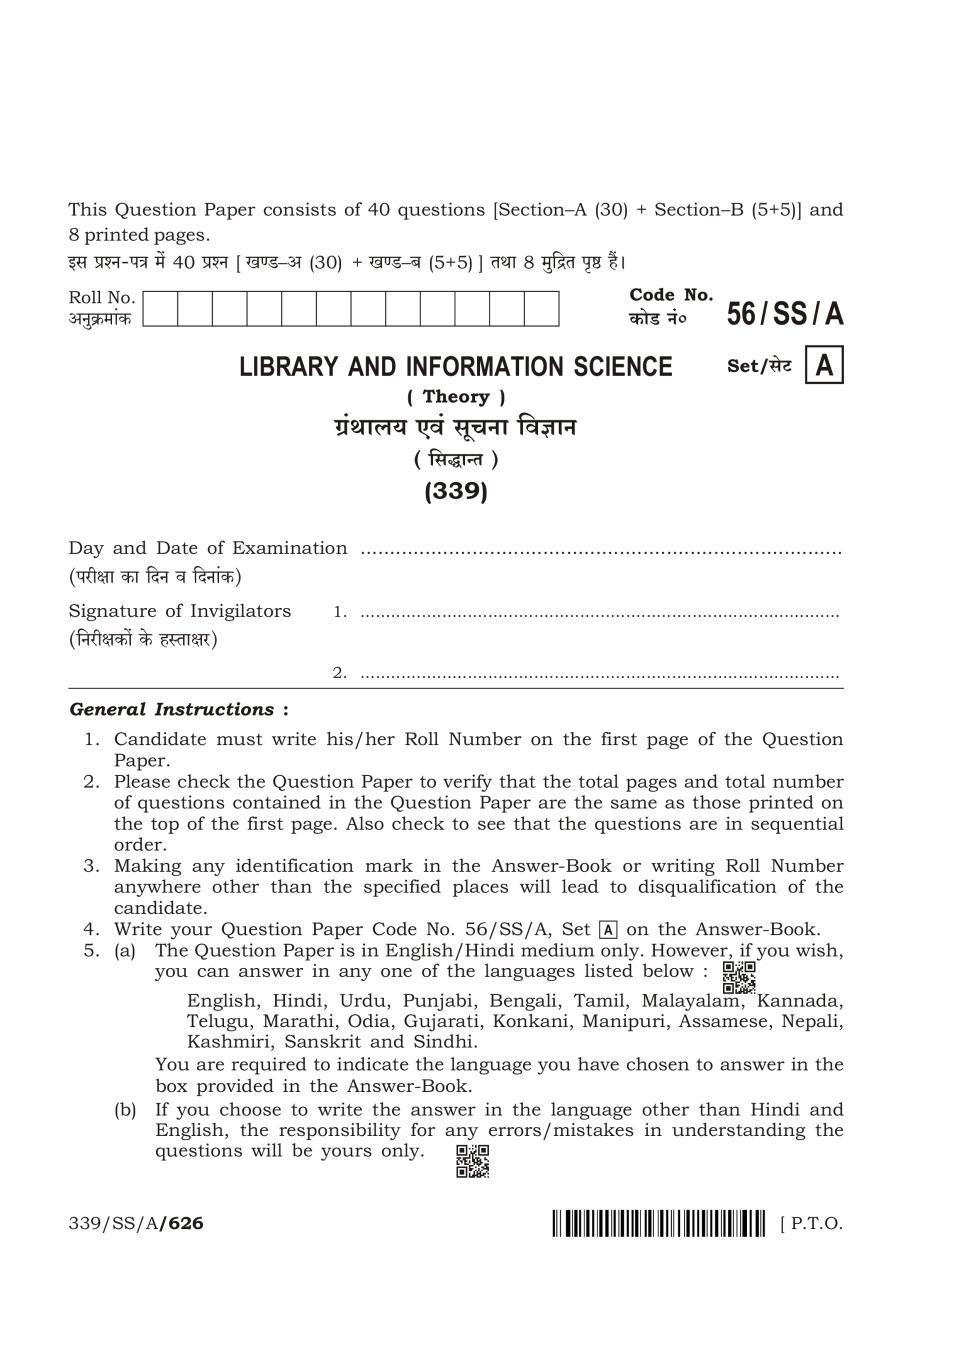 NIOS Class 12 Question Paper Apr 2018 - Library and Information science - Page 1